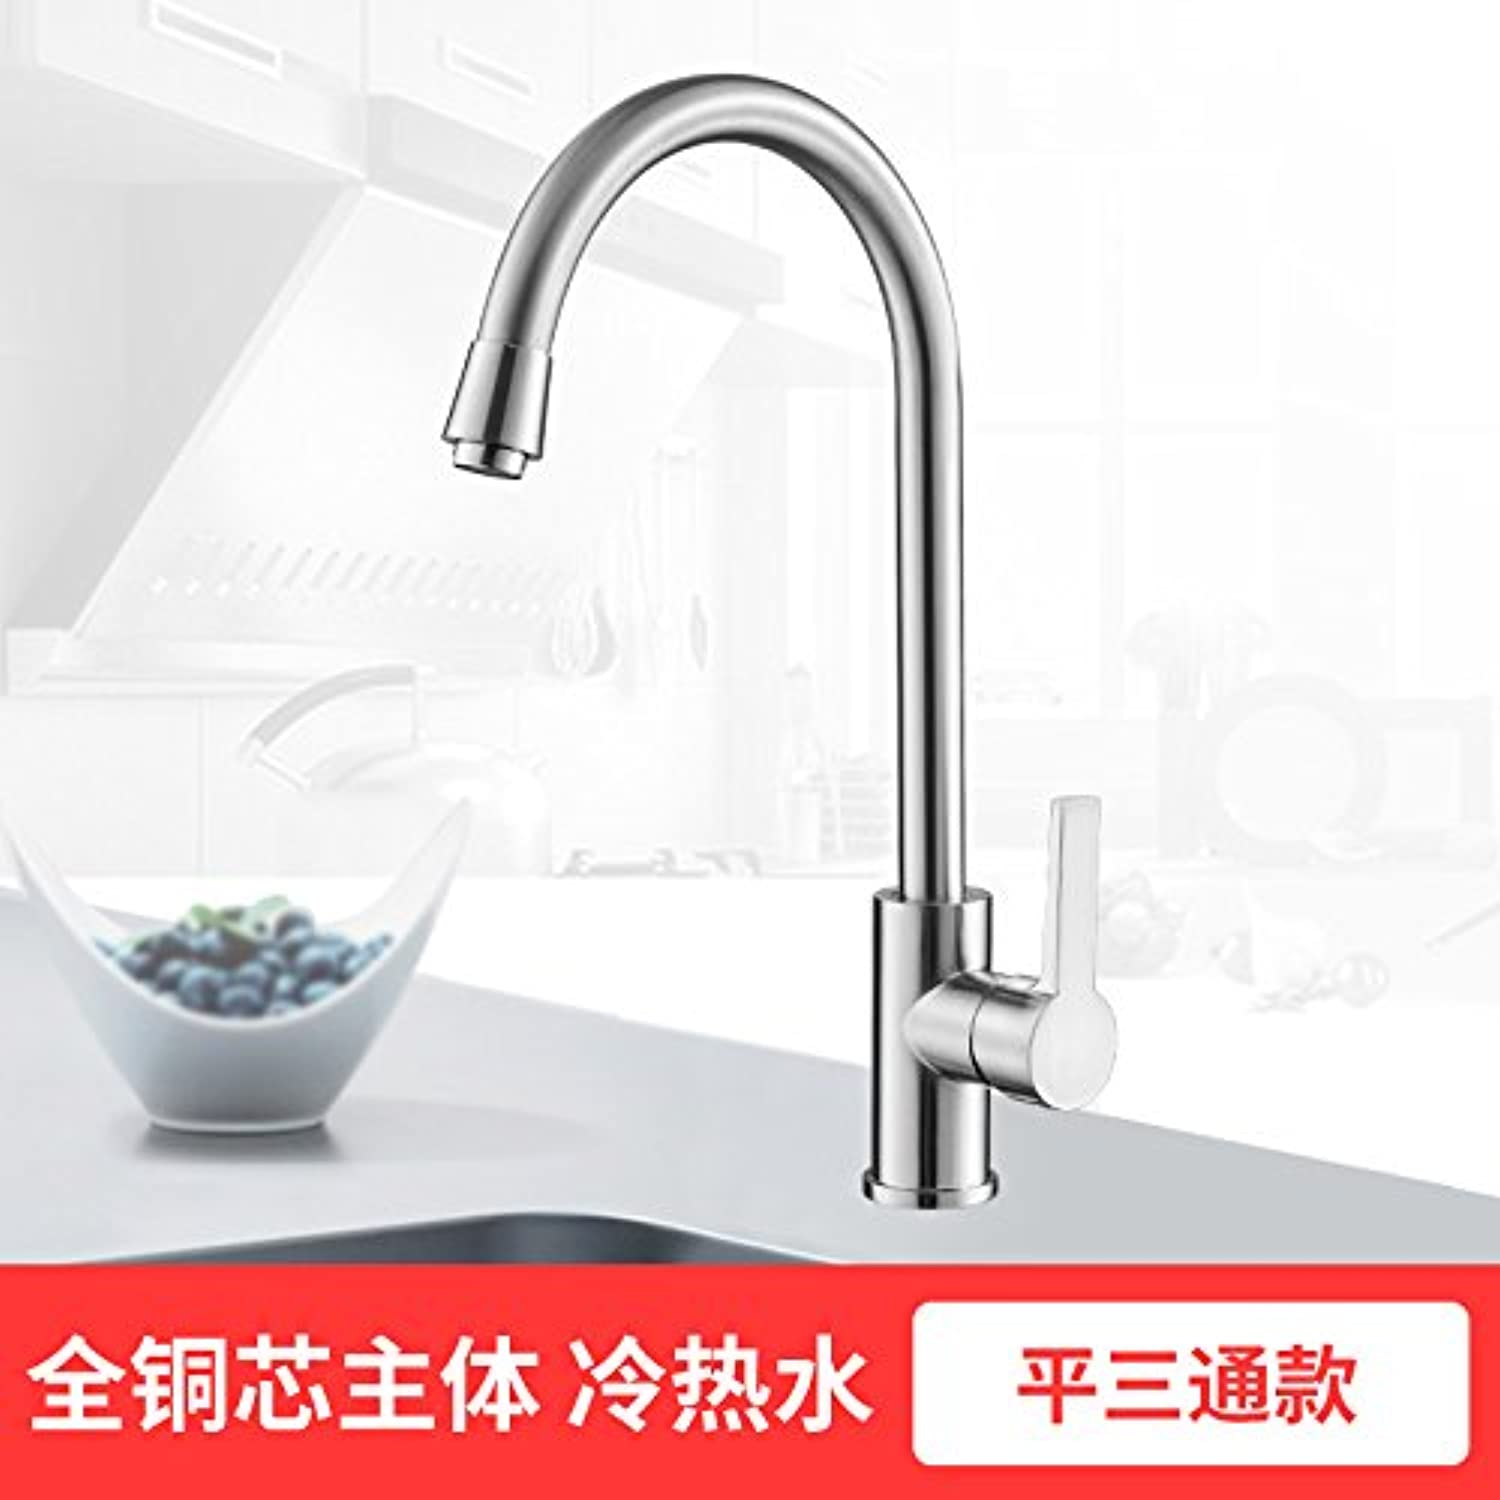 Gyps Faucet Single Lever Washbasin Mixer Tap Bathroom Fitting Brushed Brass Housing Cold Water Kitchen Swivel Tap and Cold Water Slit Stainless Steel Single Handle Faucet Di